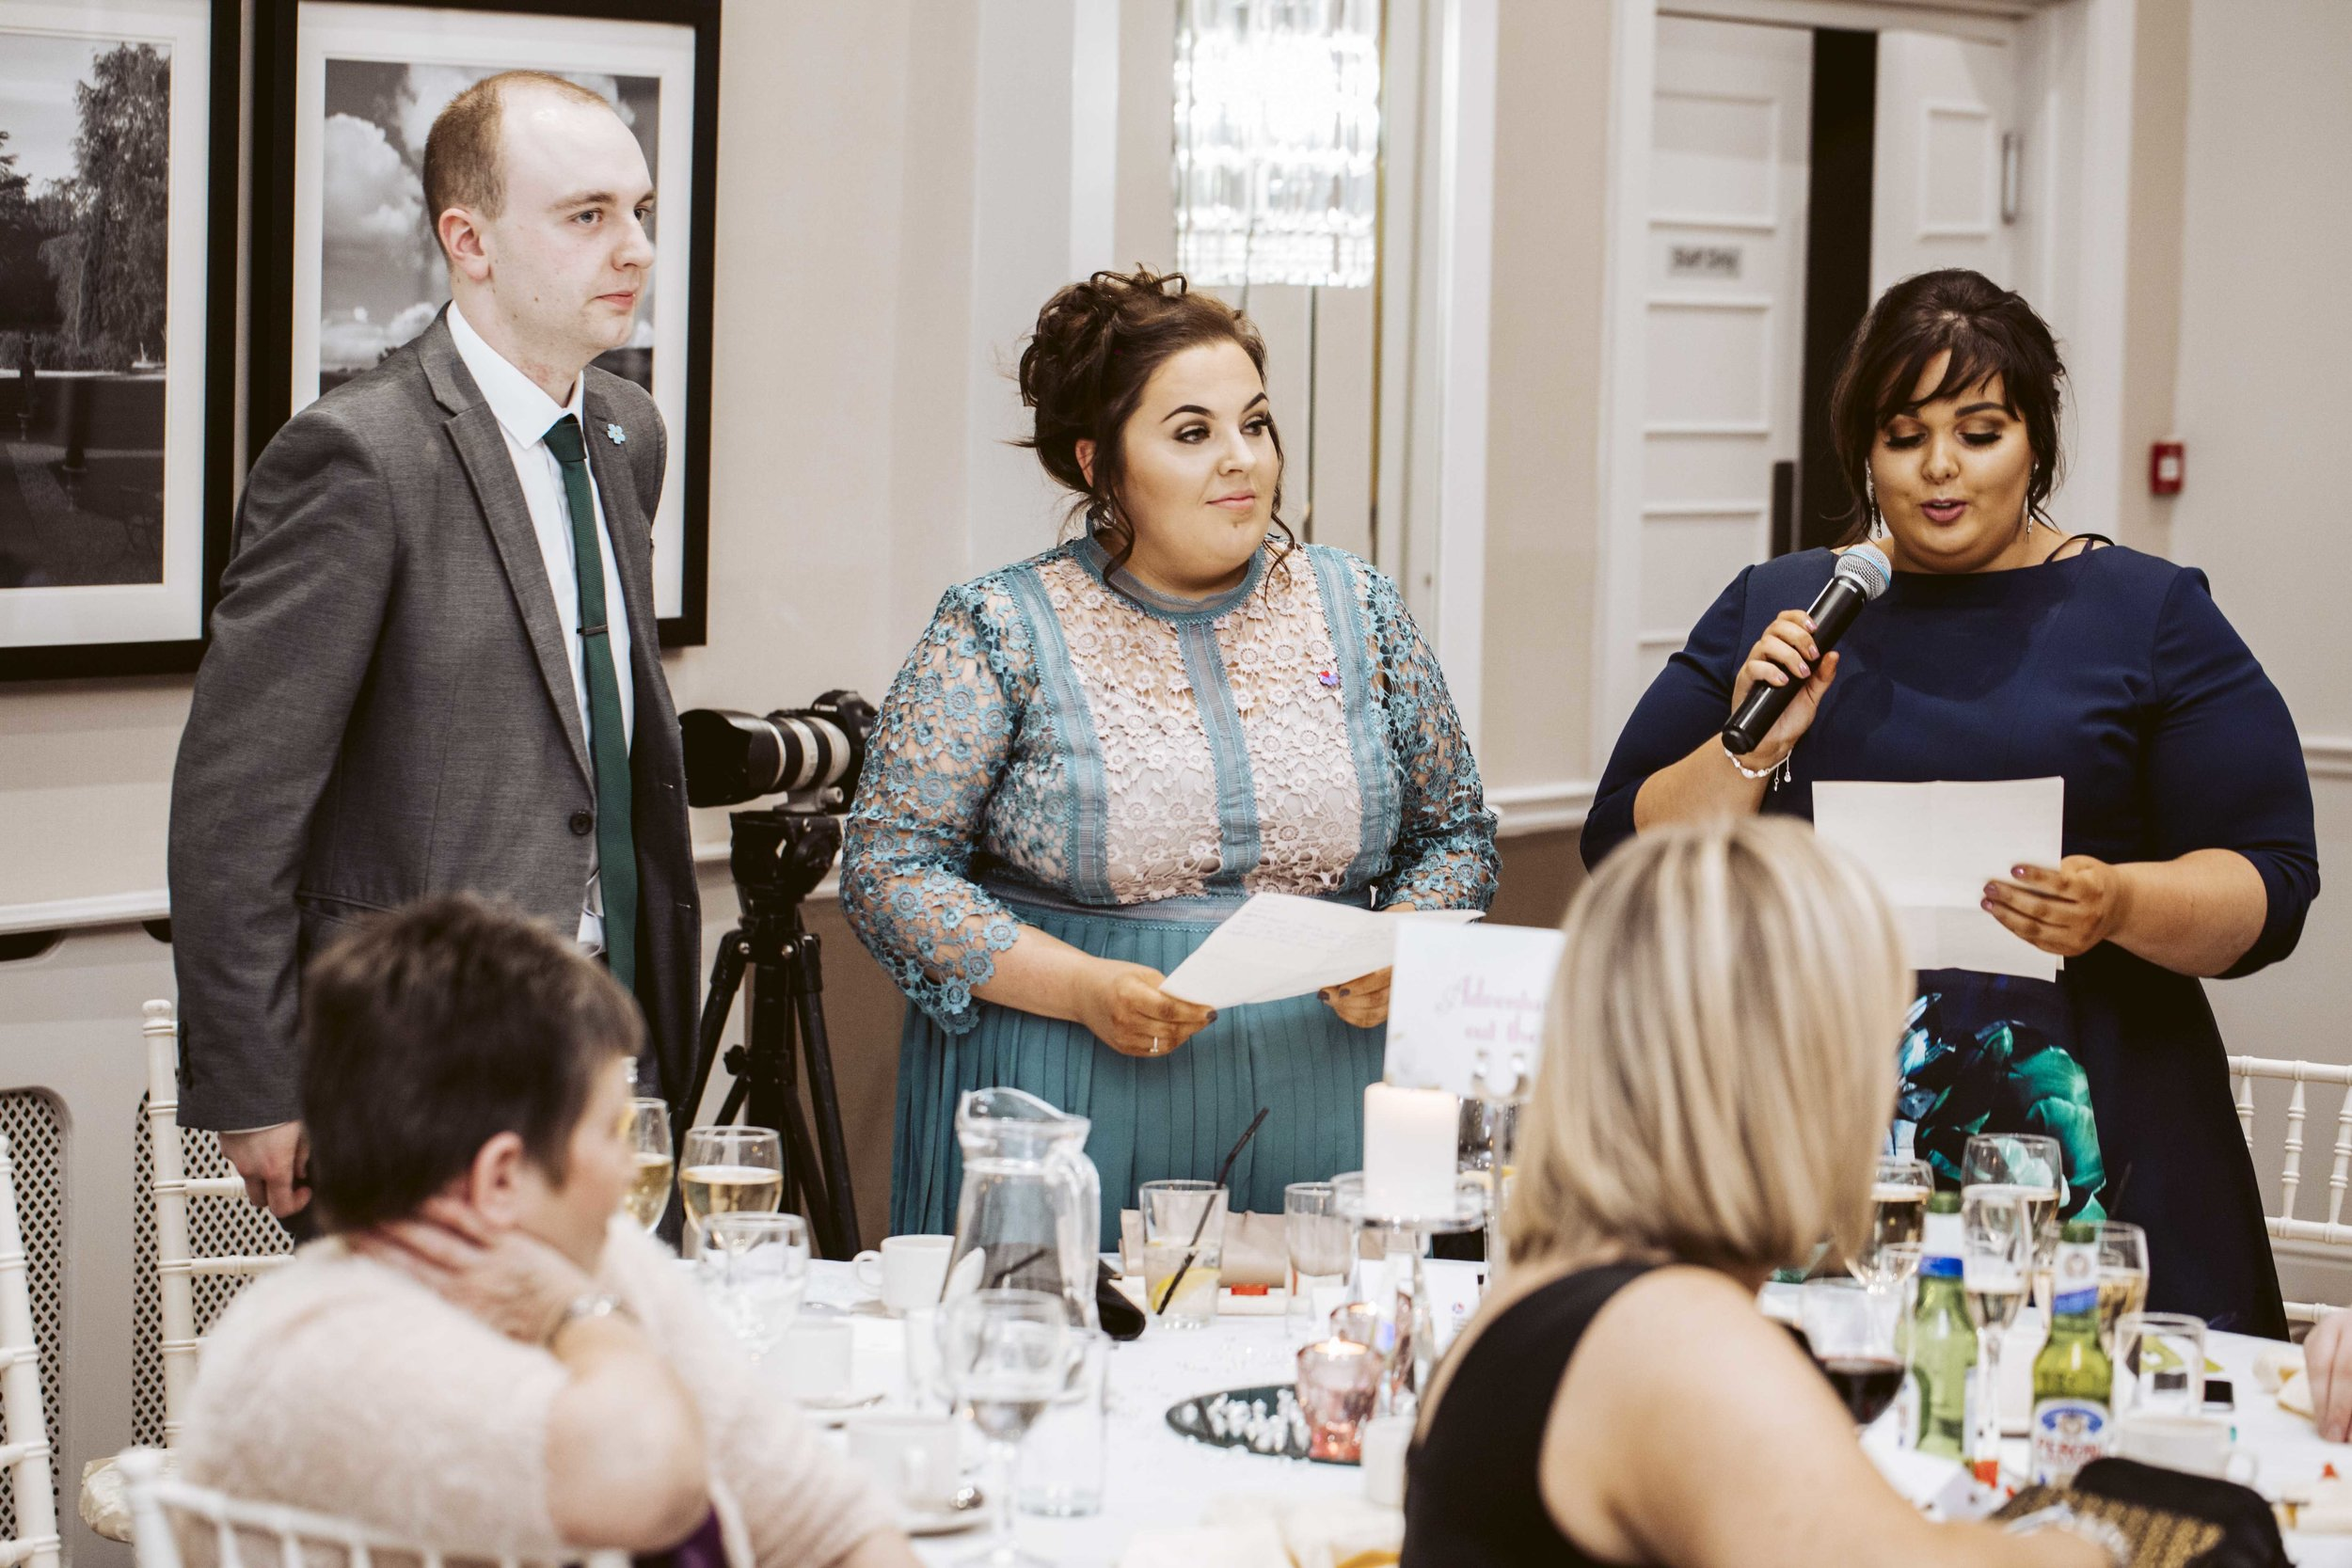 Mar Hall Wedding 2018, Haminsh & Emma McEwan 75.JPG